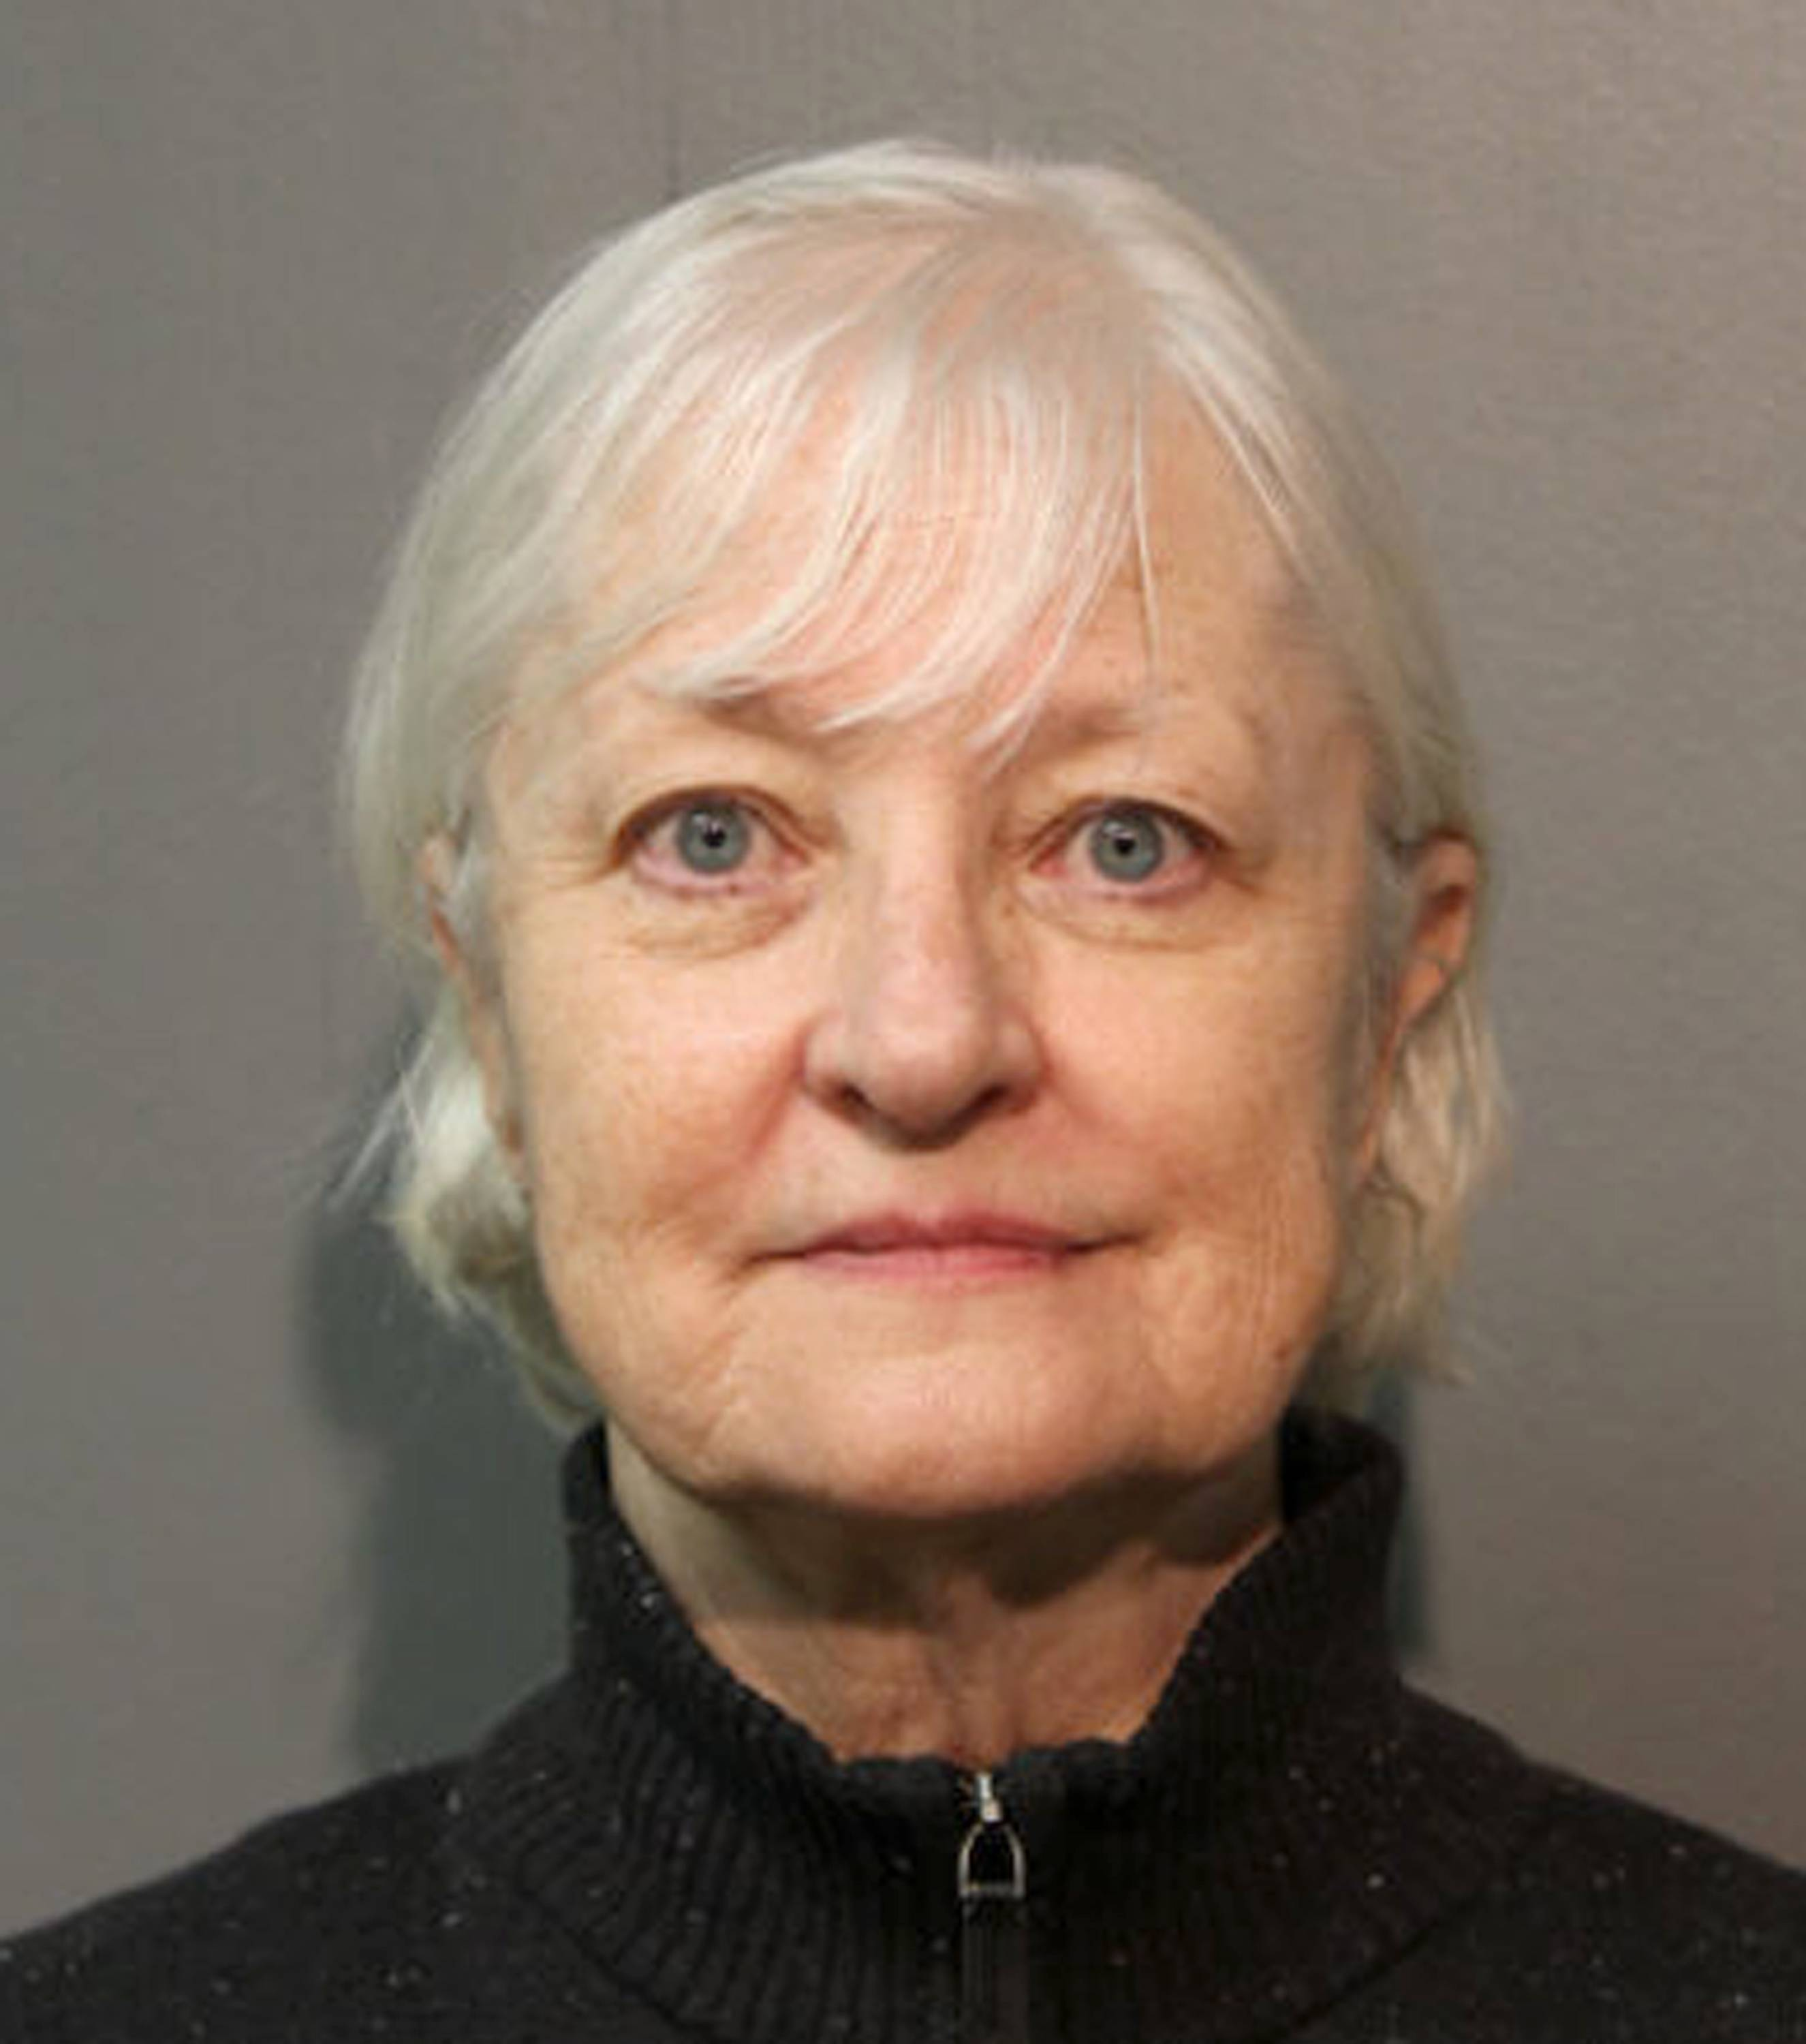 Serial stowaway ordered held for mental health exam